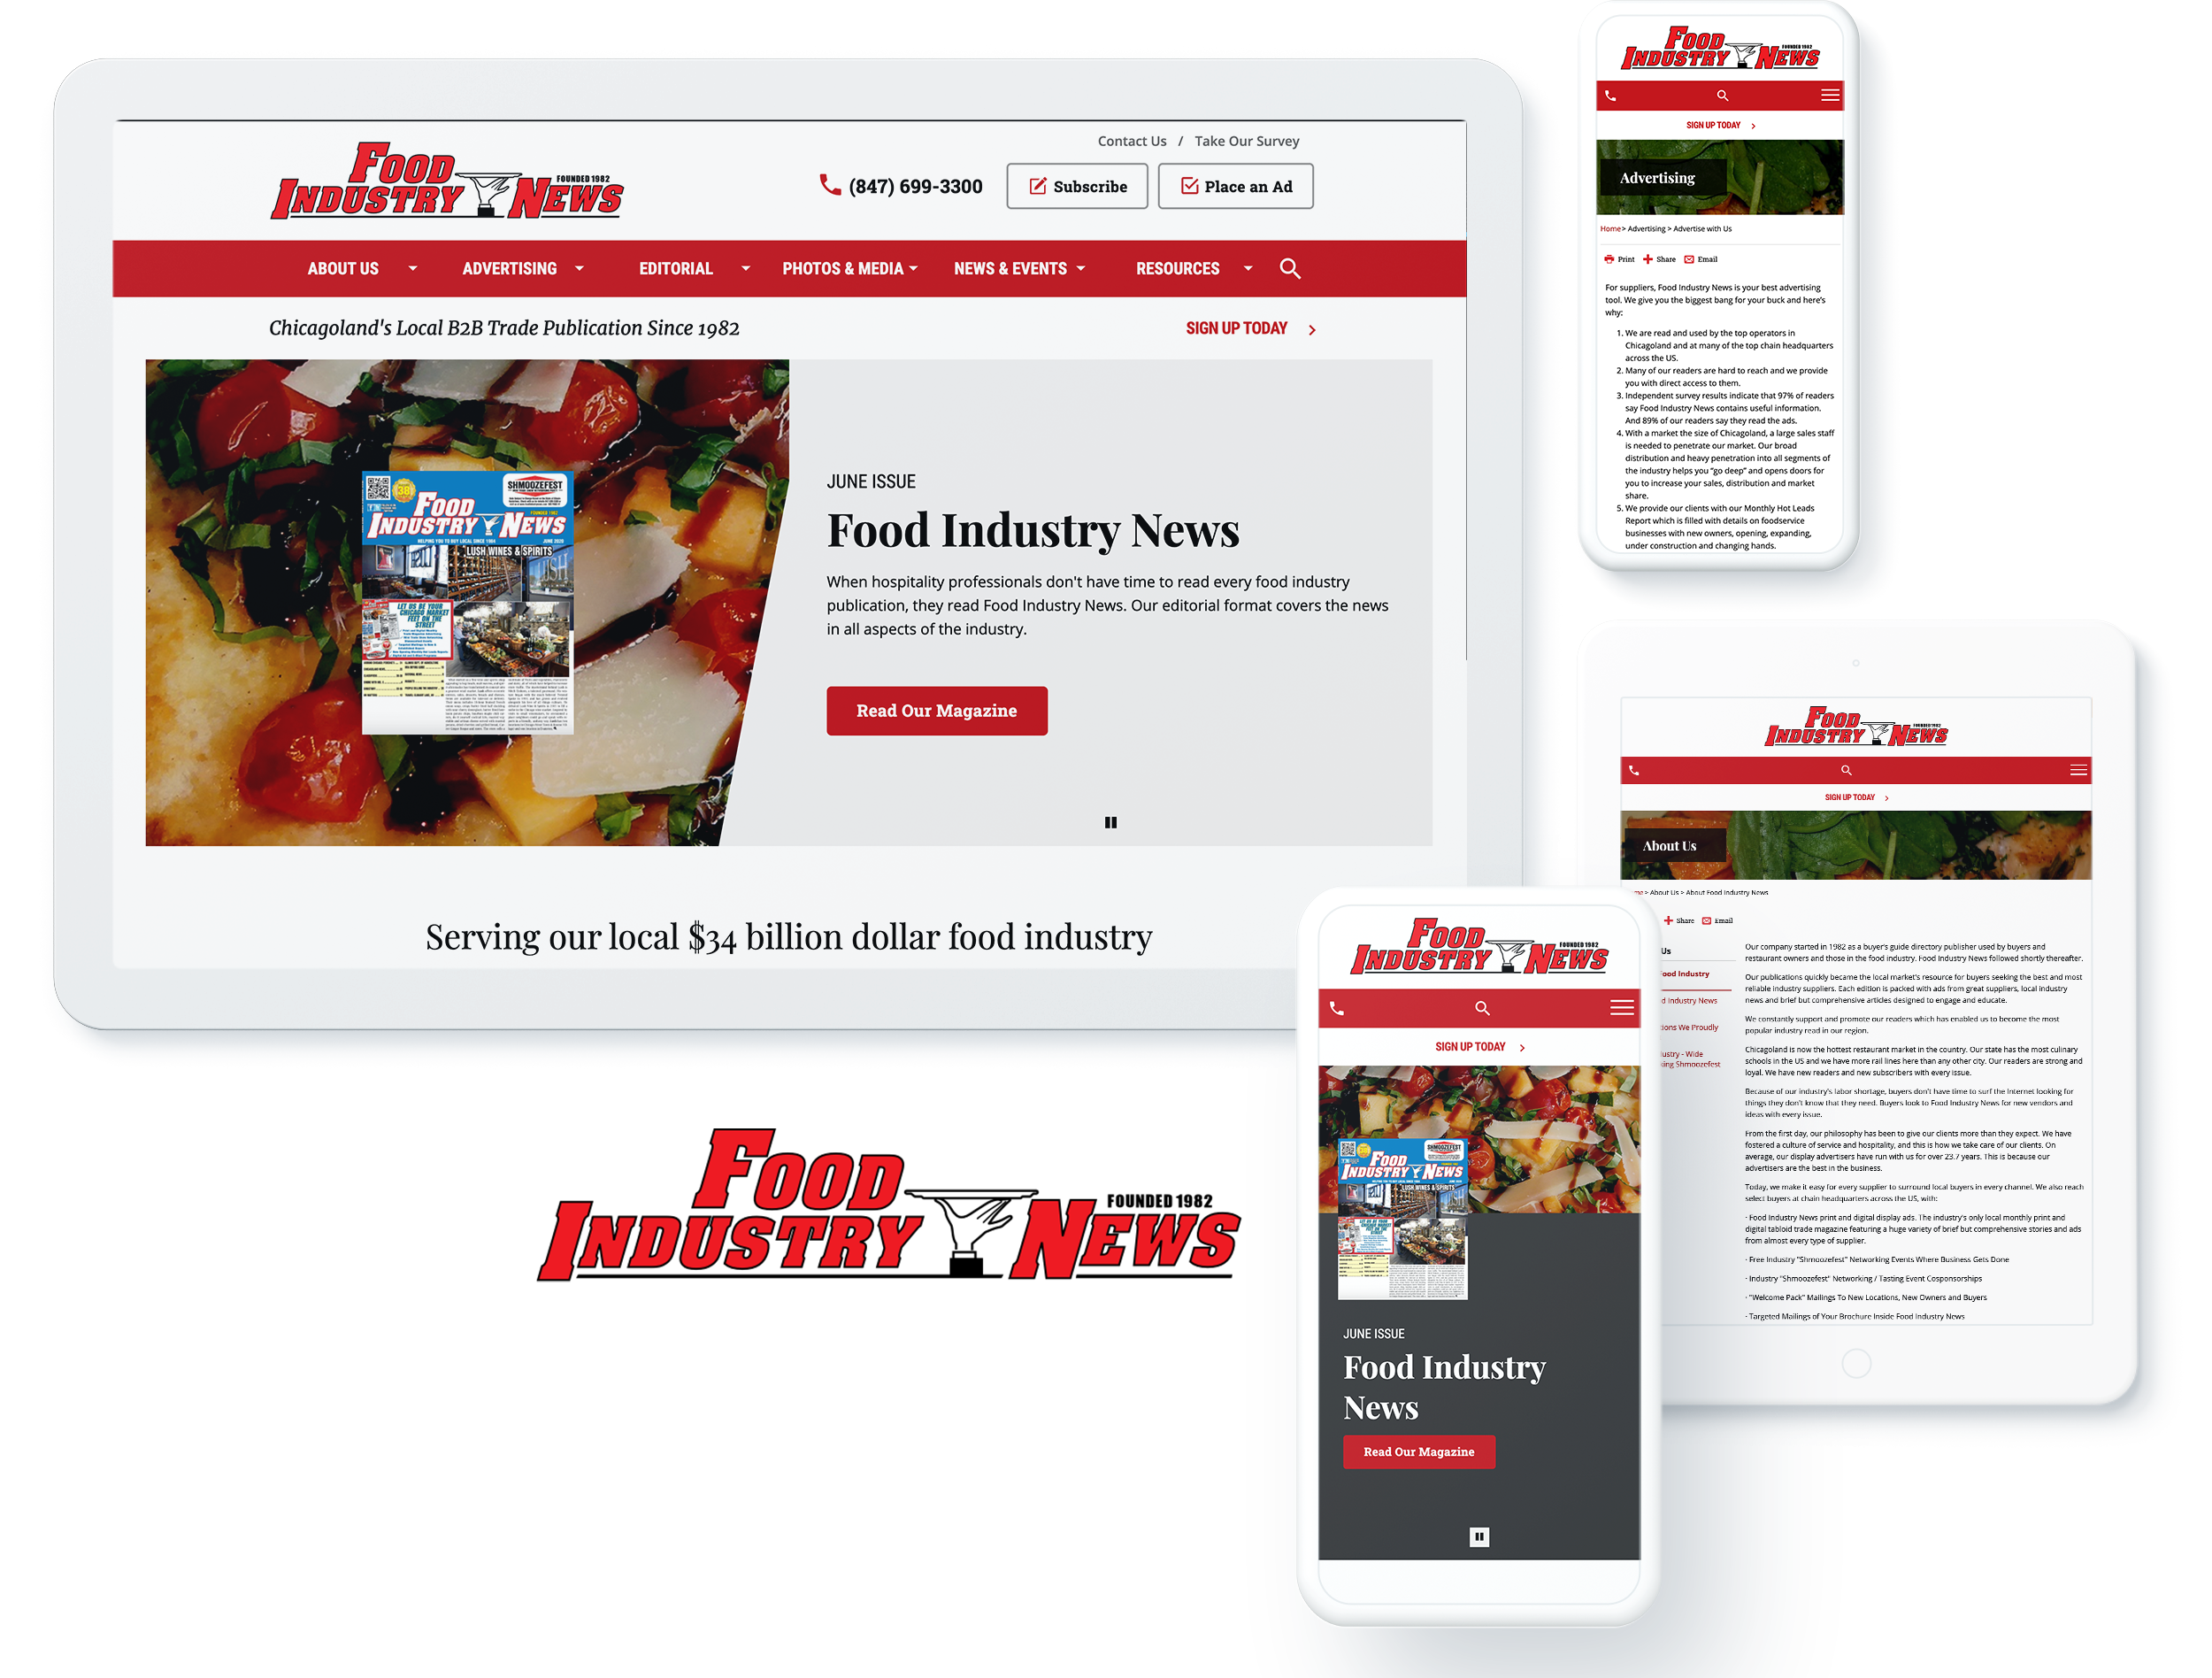 Food Industry News Screens